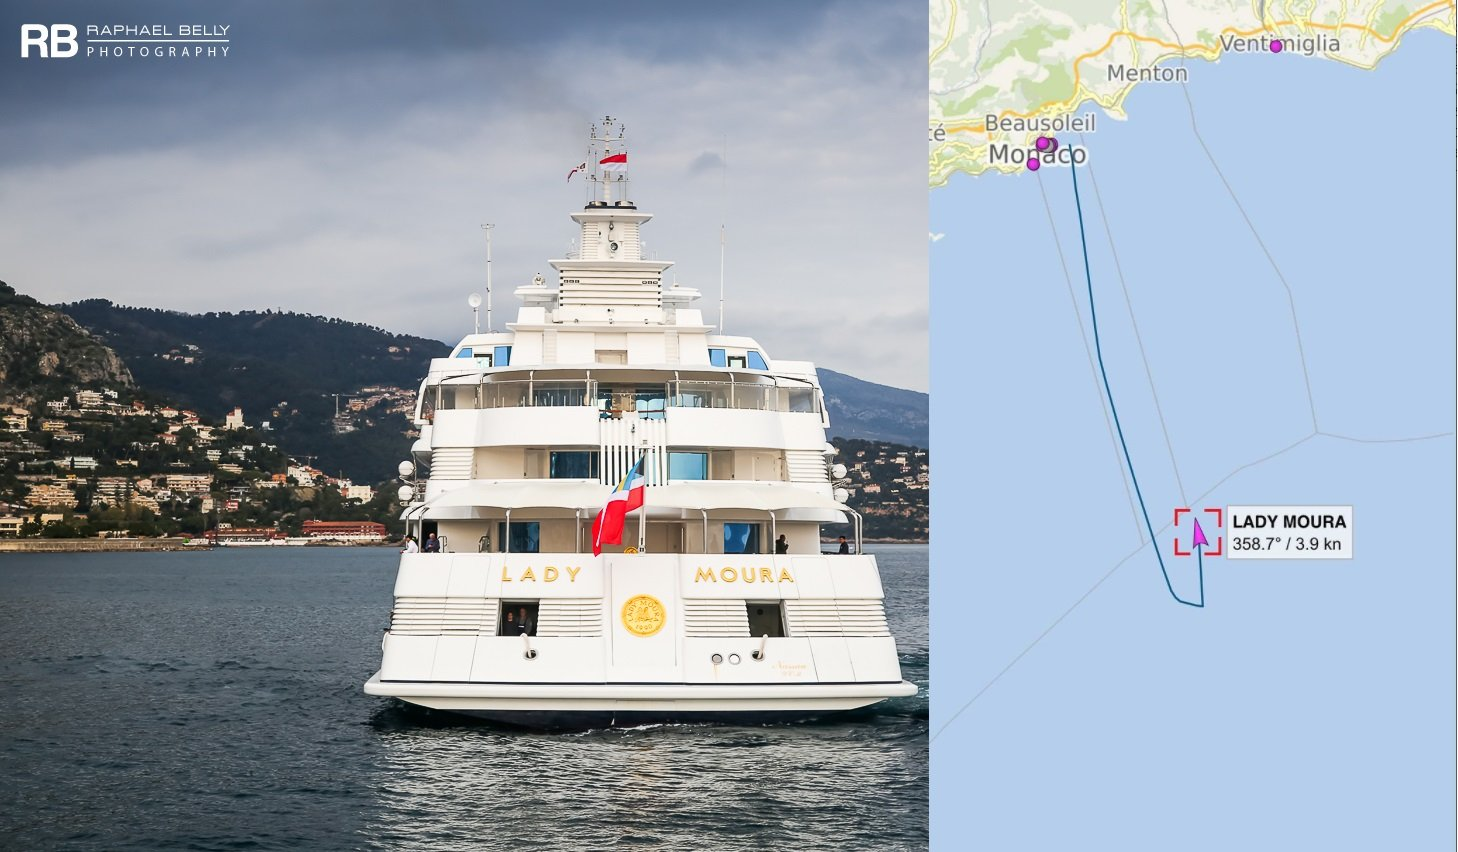 LADY MOURA Yacht • News • Has She Been Sold?